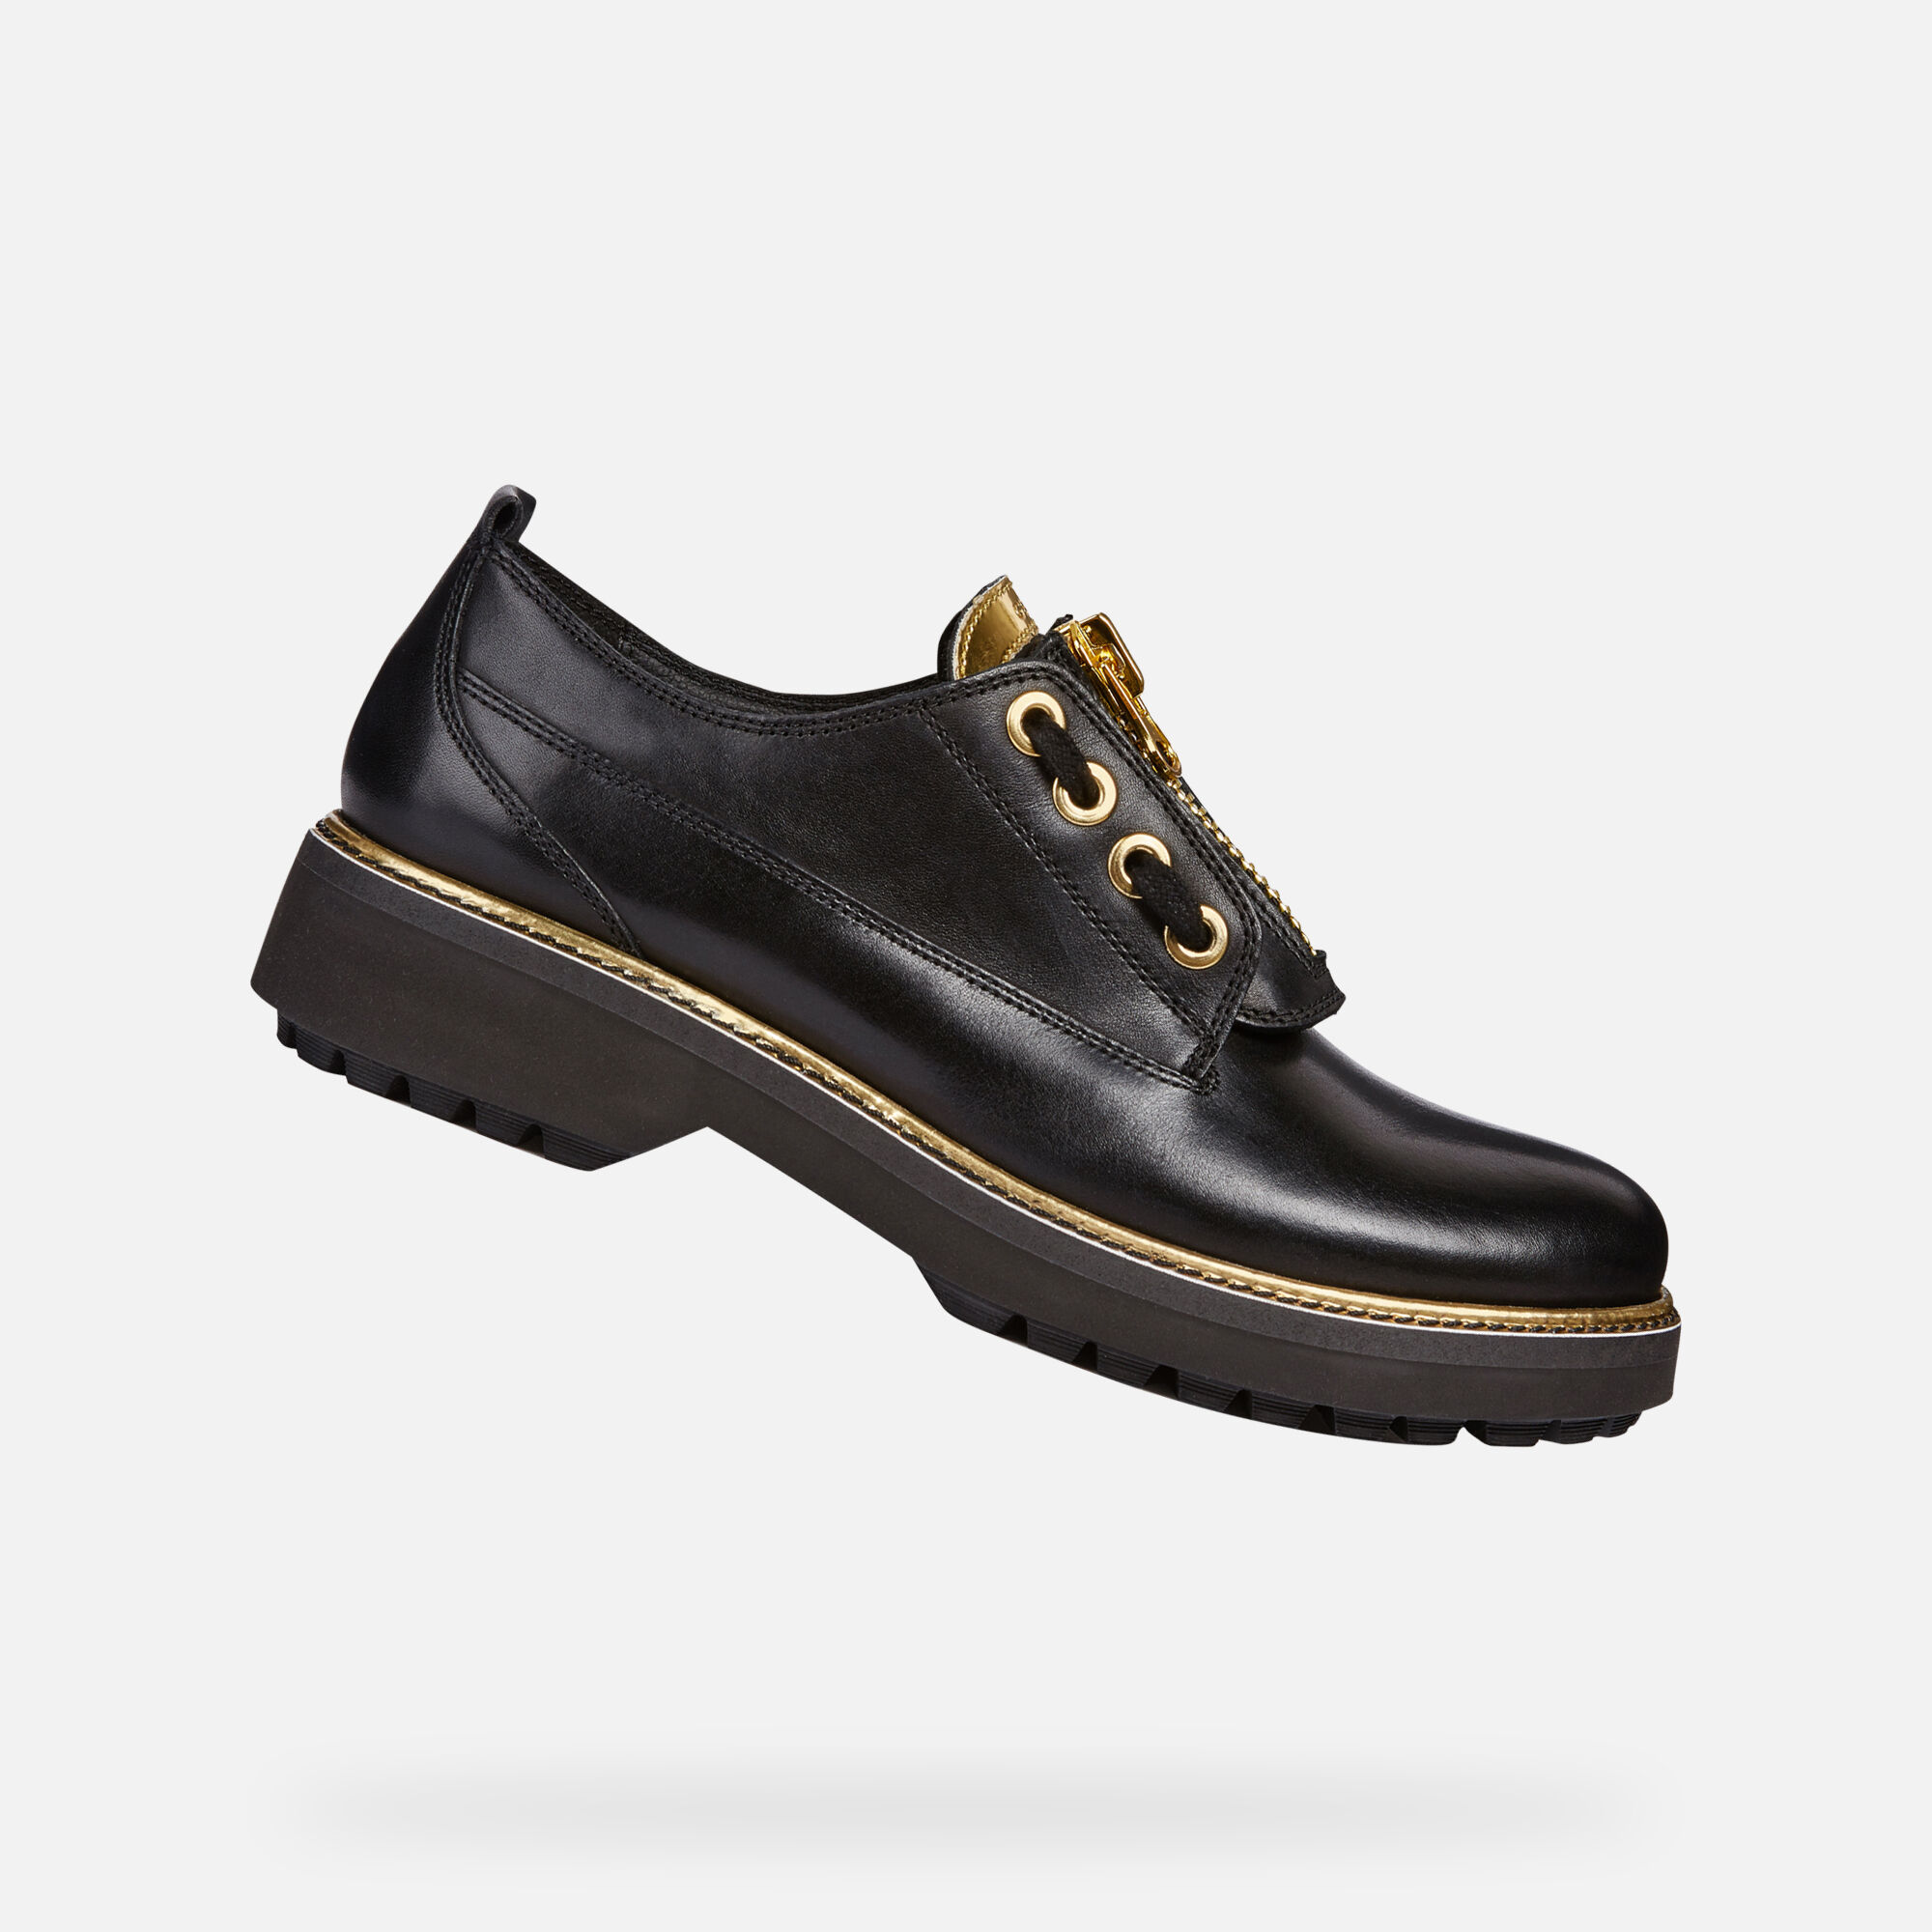 From Brogues Lace Women Ups amp; Plus Asheely Geox w6UIvXp